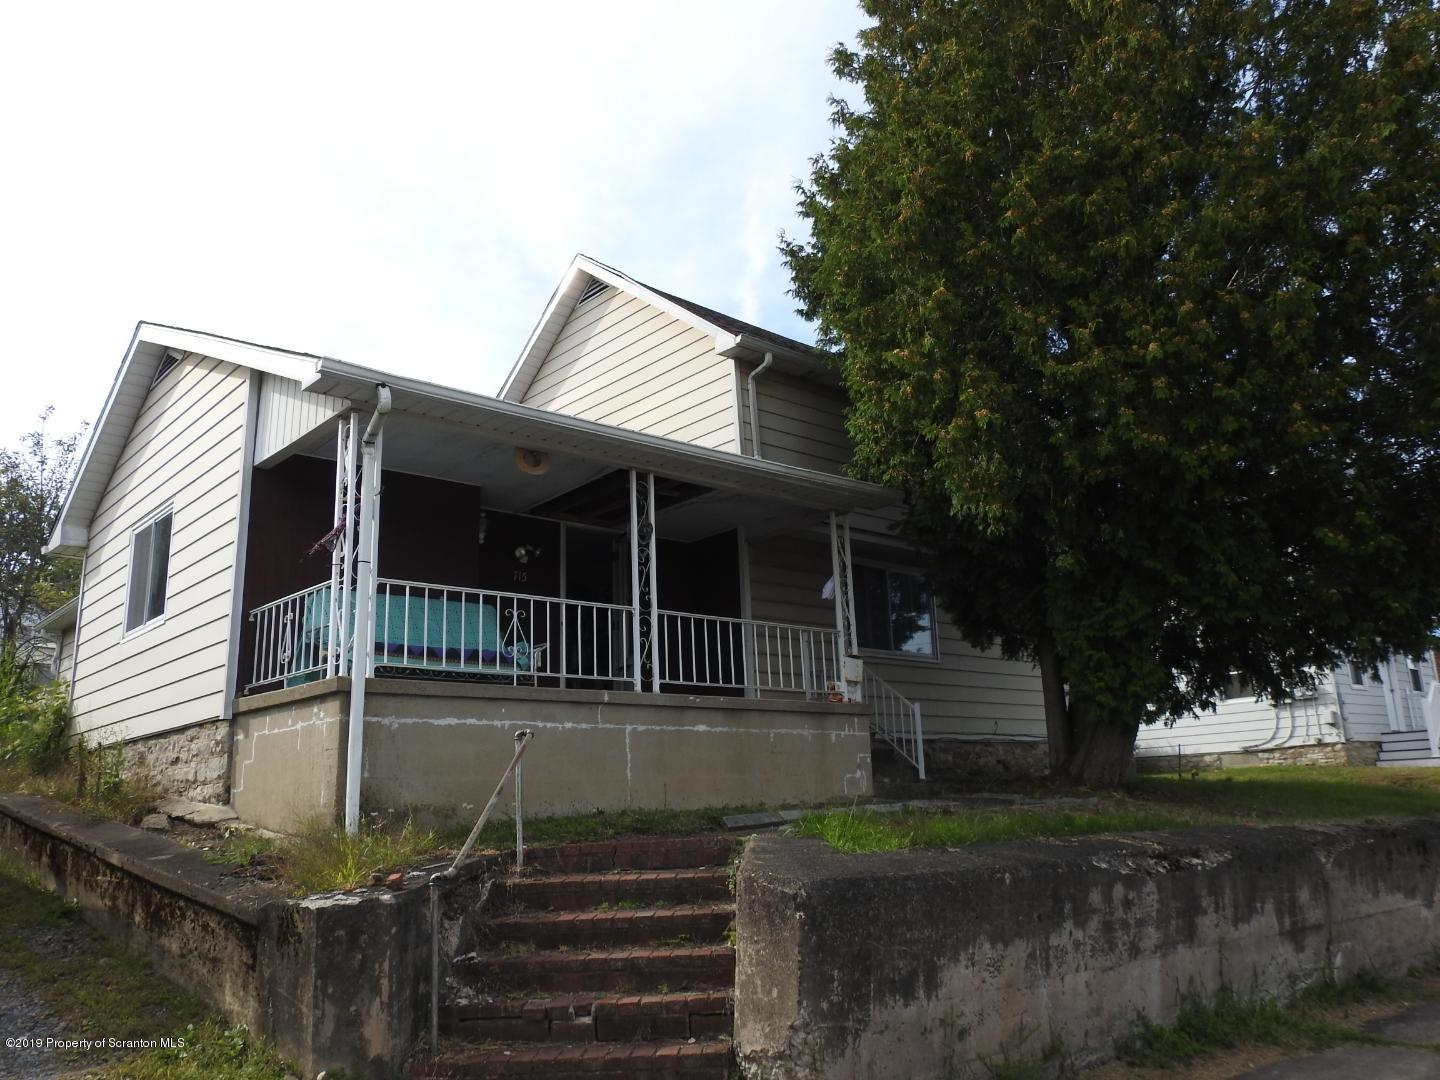 715 Main St, Forest City, Pennsylvania 18421, 3 Bedrooms Bedrooms, 7 Rooms Rooms,1 BathroomBathrooms,Single Family,For Sale,Main St,19-4351